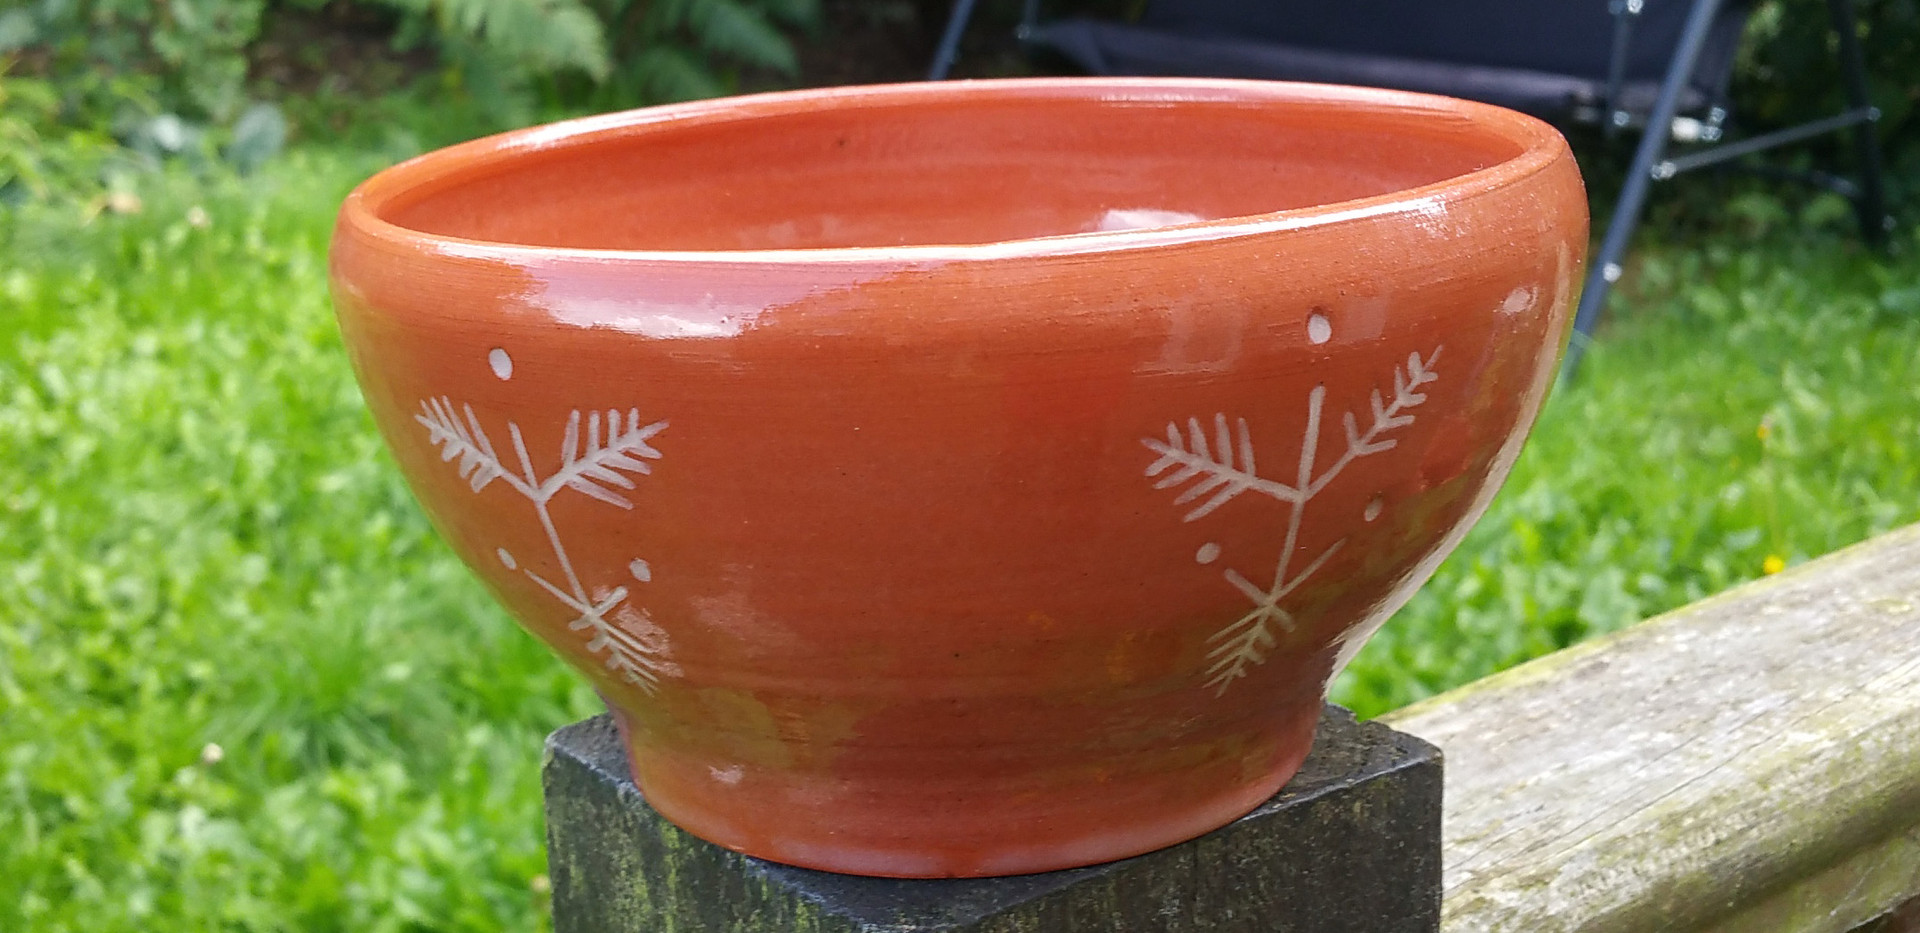 bowl with slavic pattern